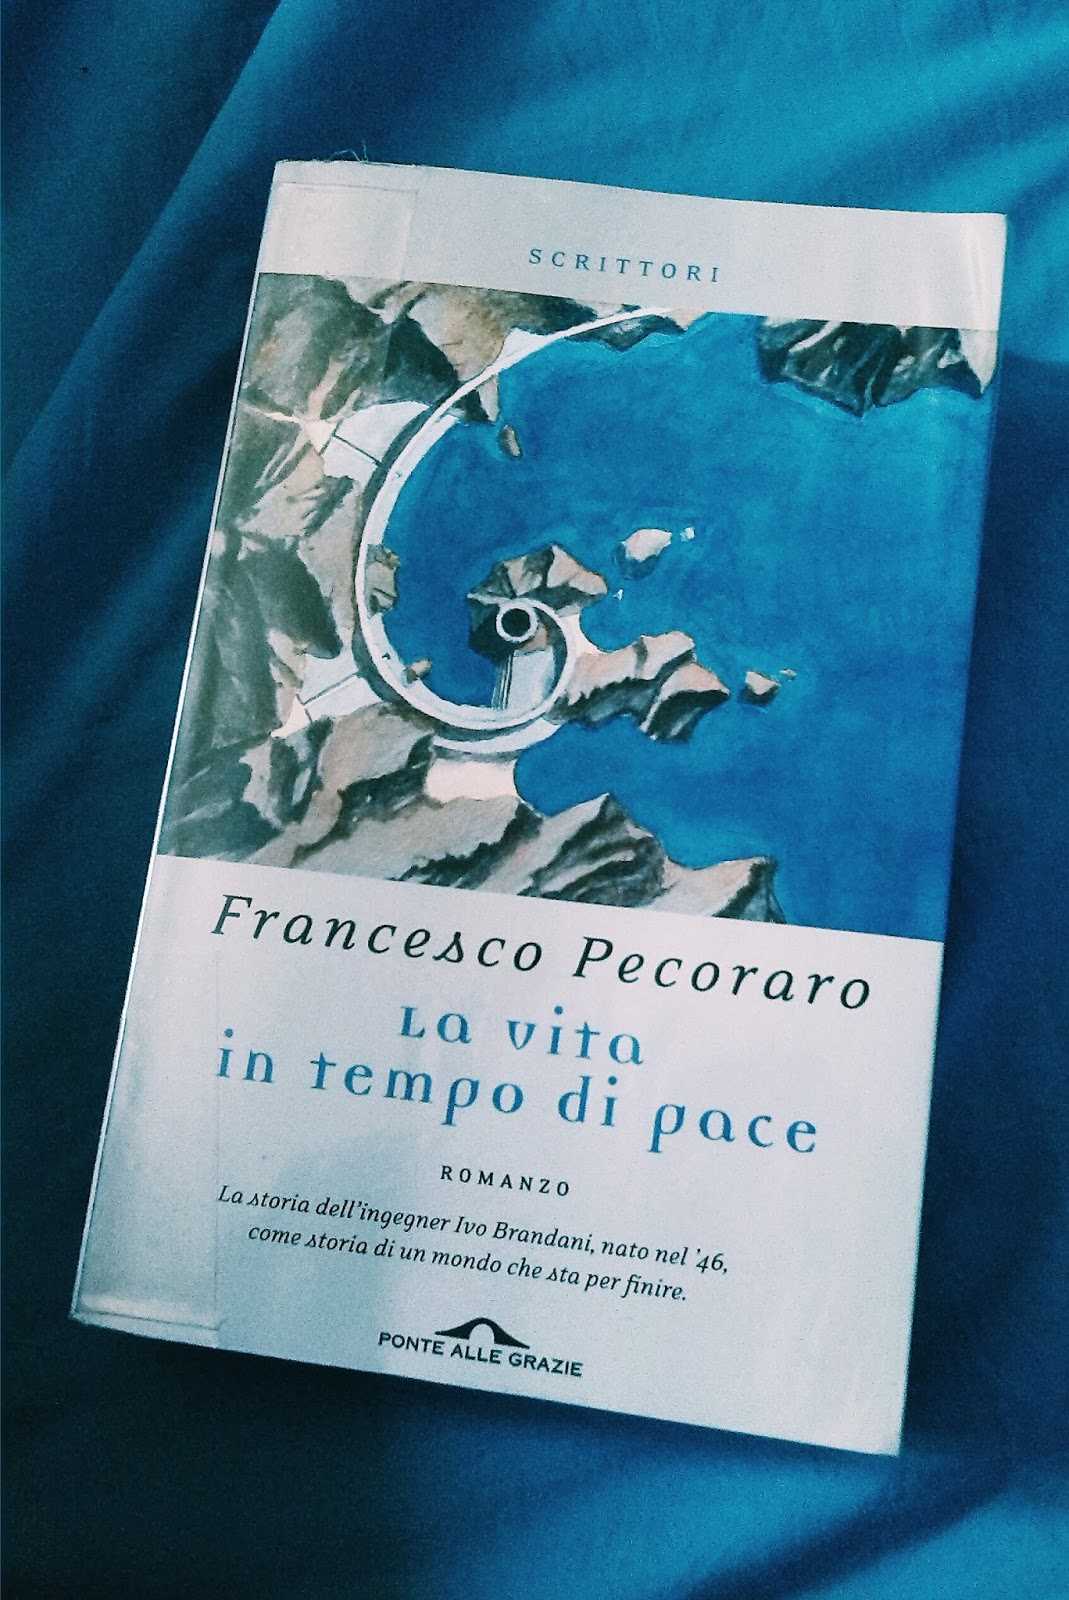 La vita in tempo di pace - Francesco Pecoraro